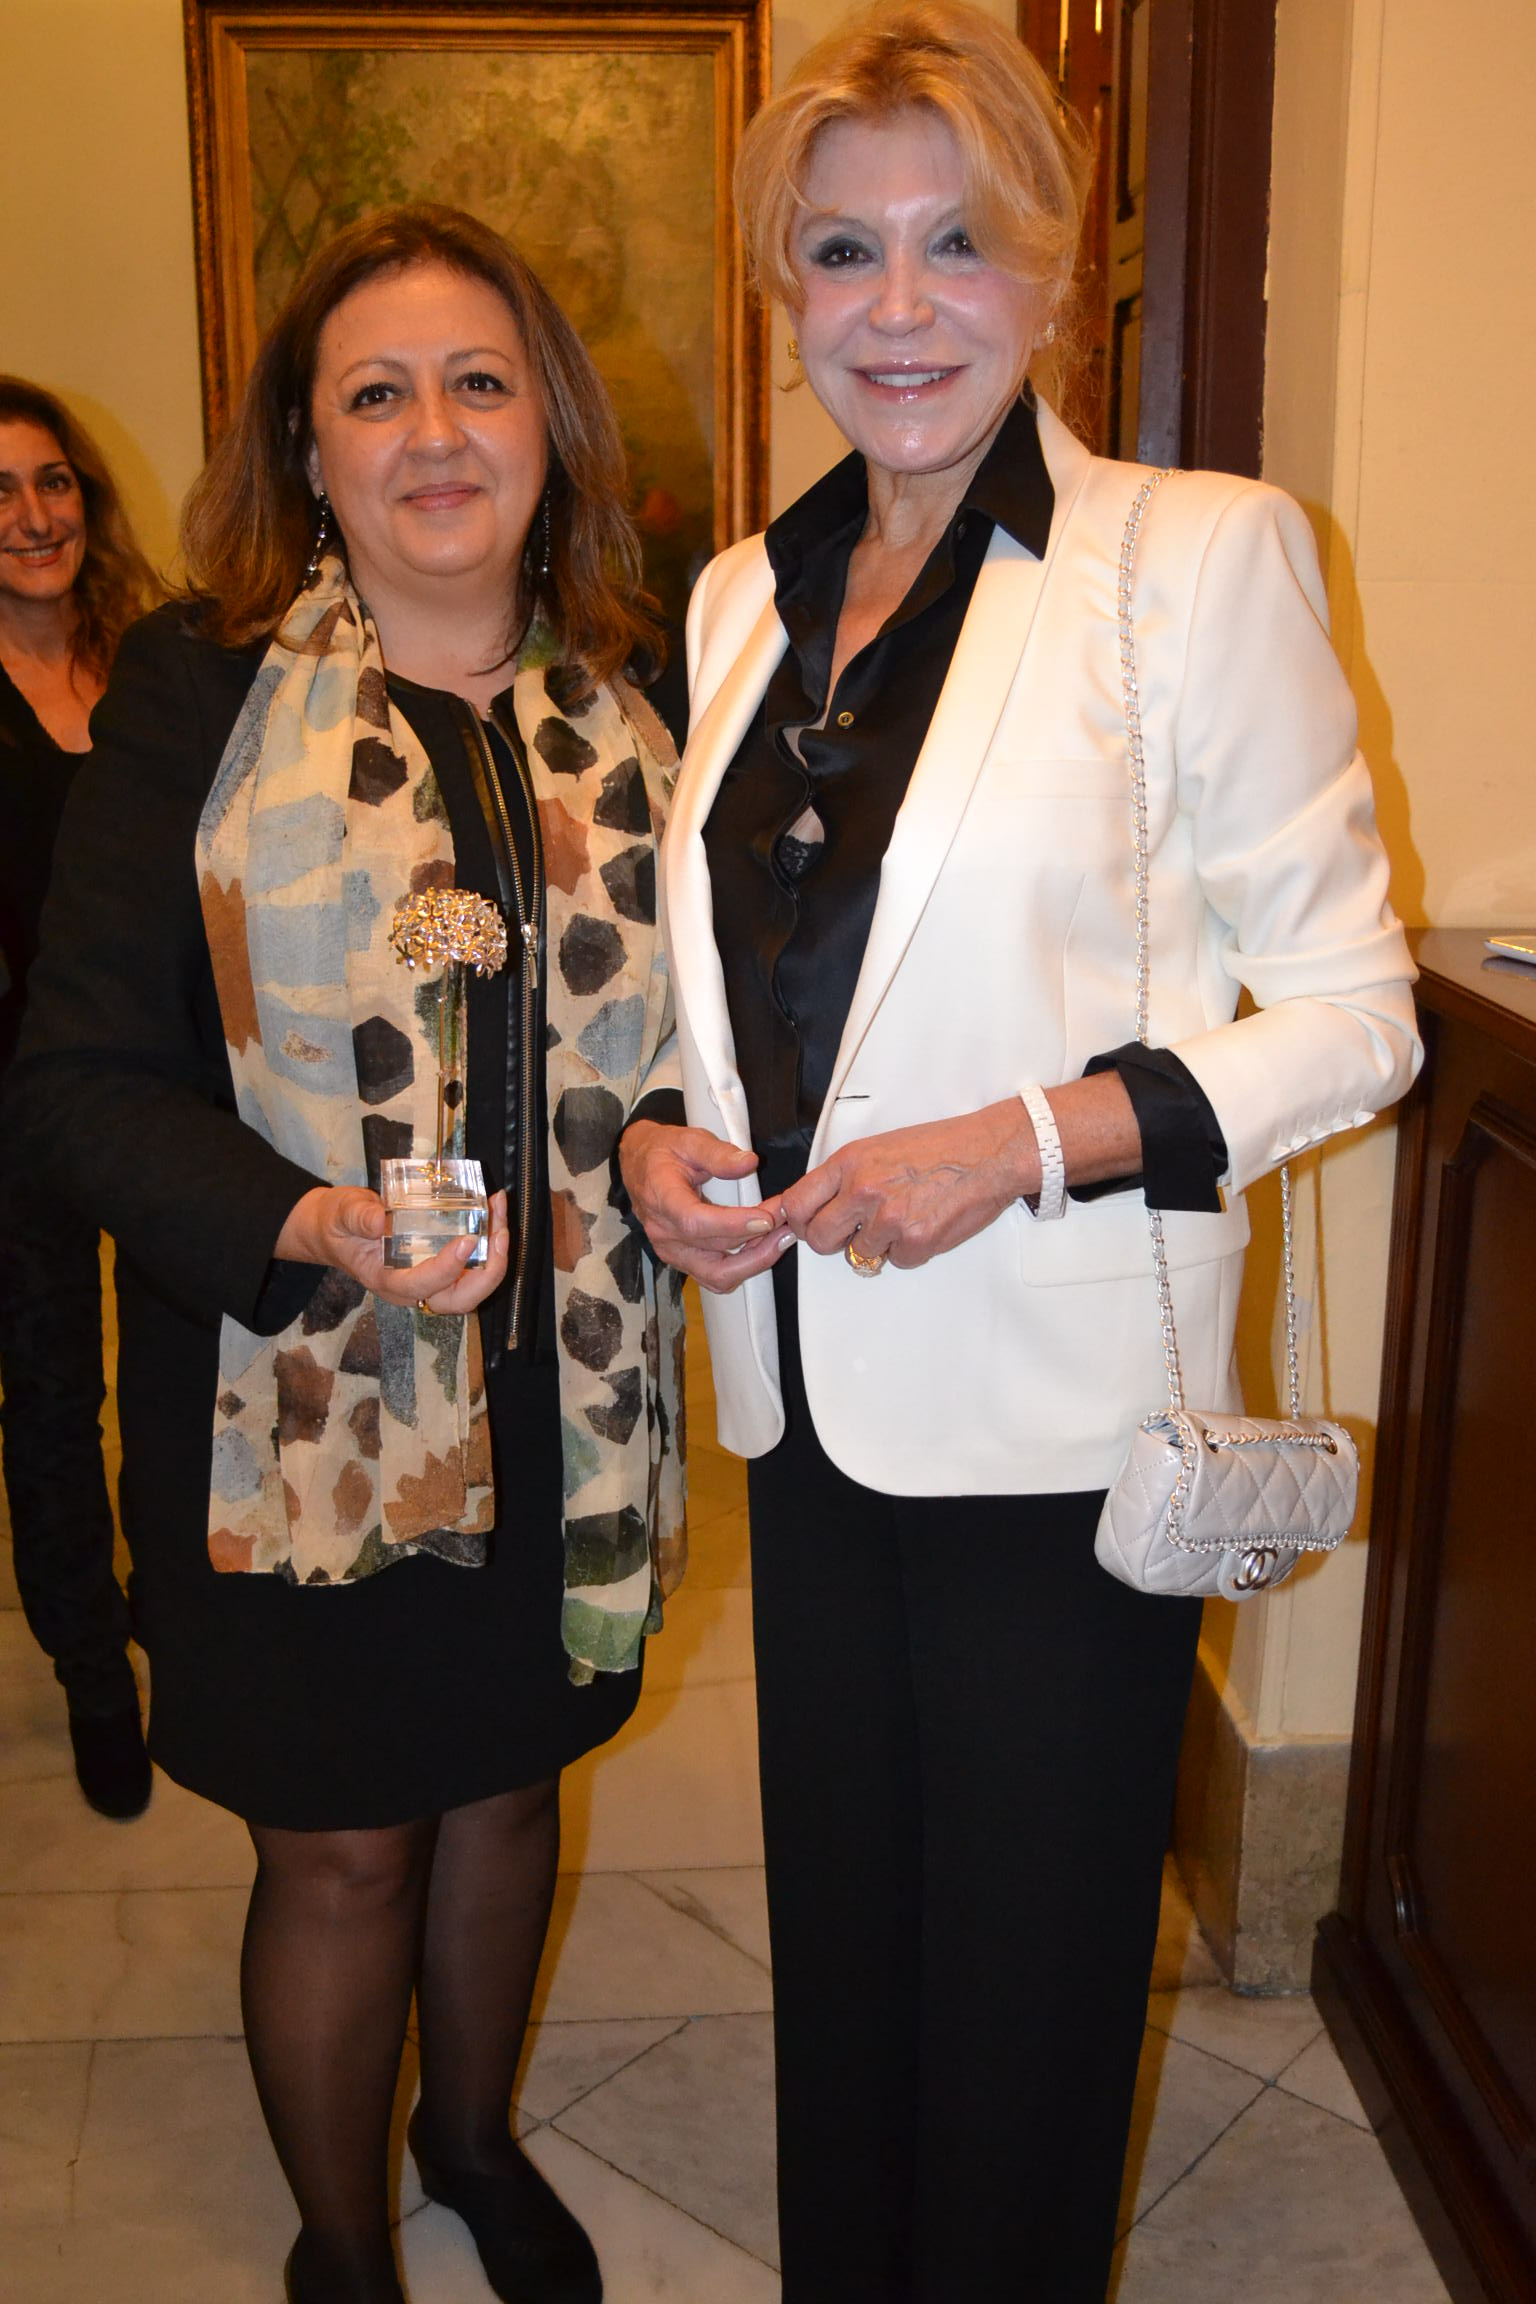 The Director of the Alhambra receives an award from the Spanish Confederation of Directors and Executives